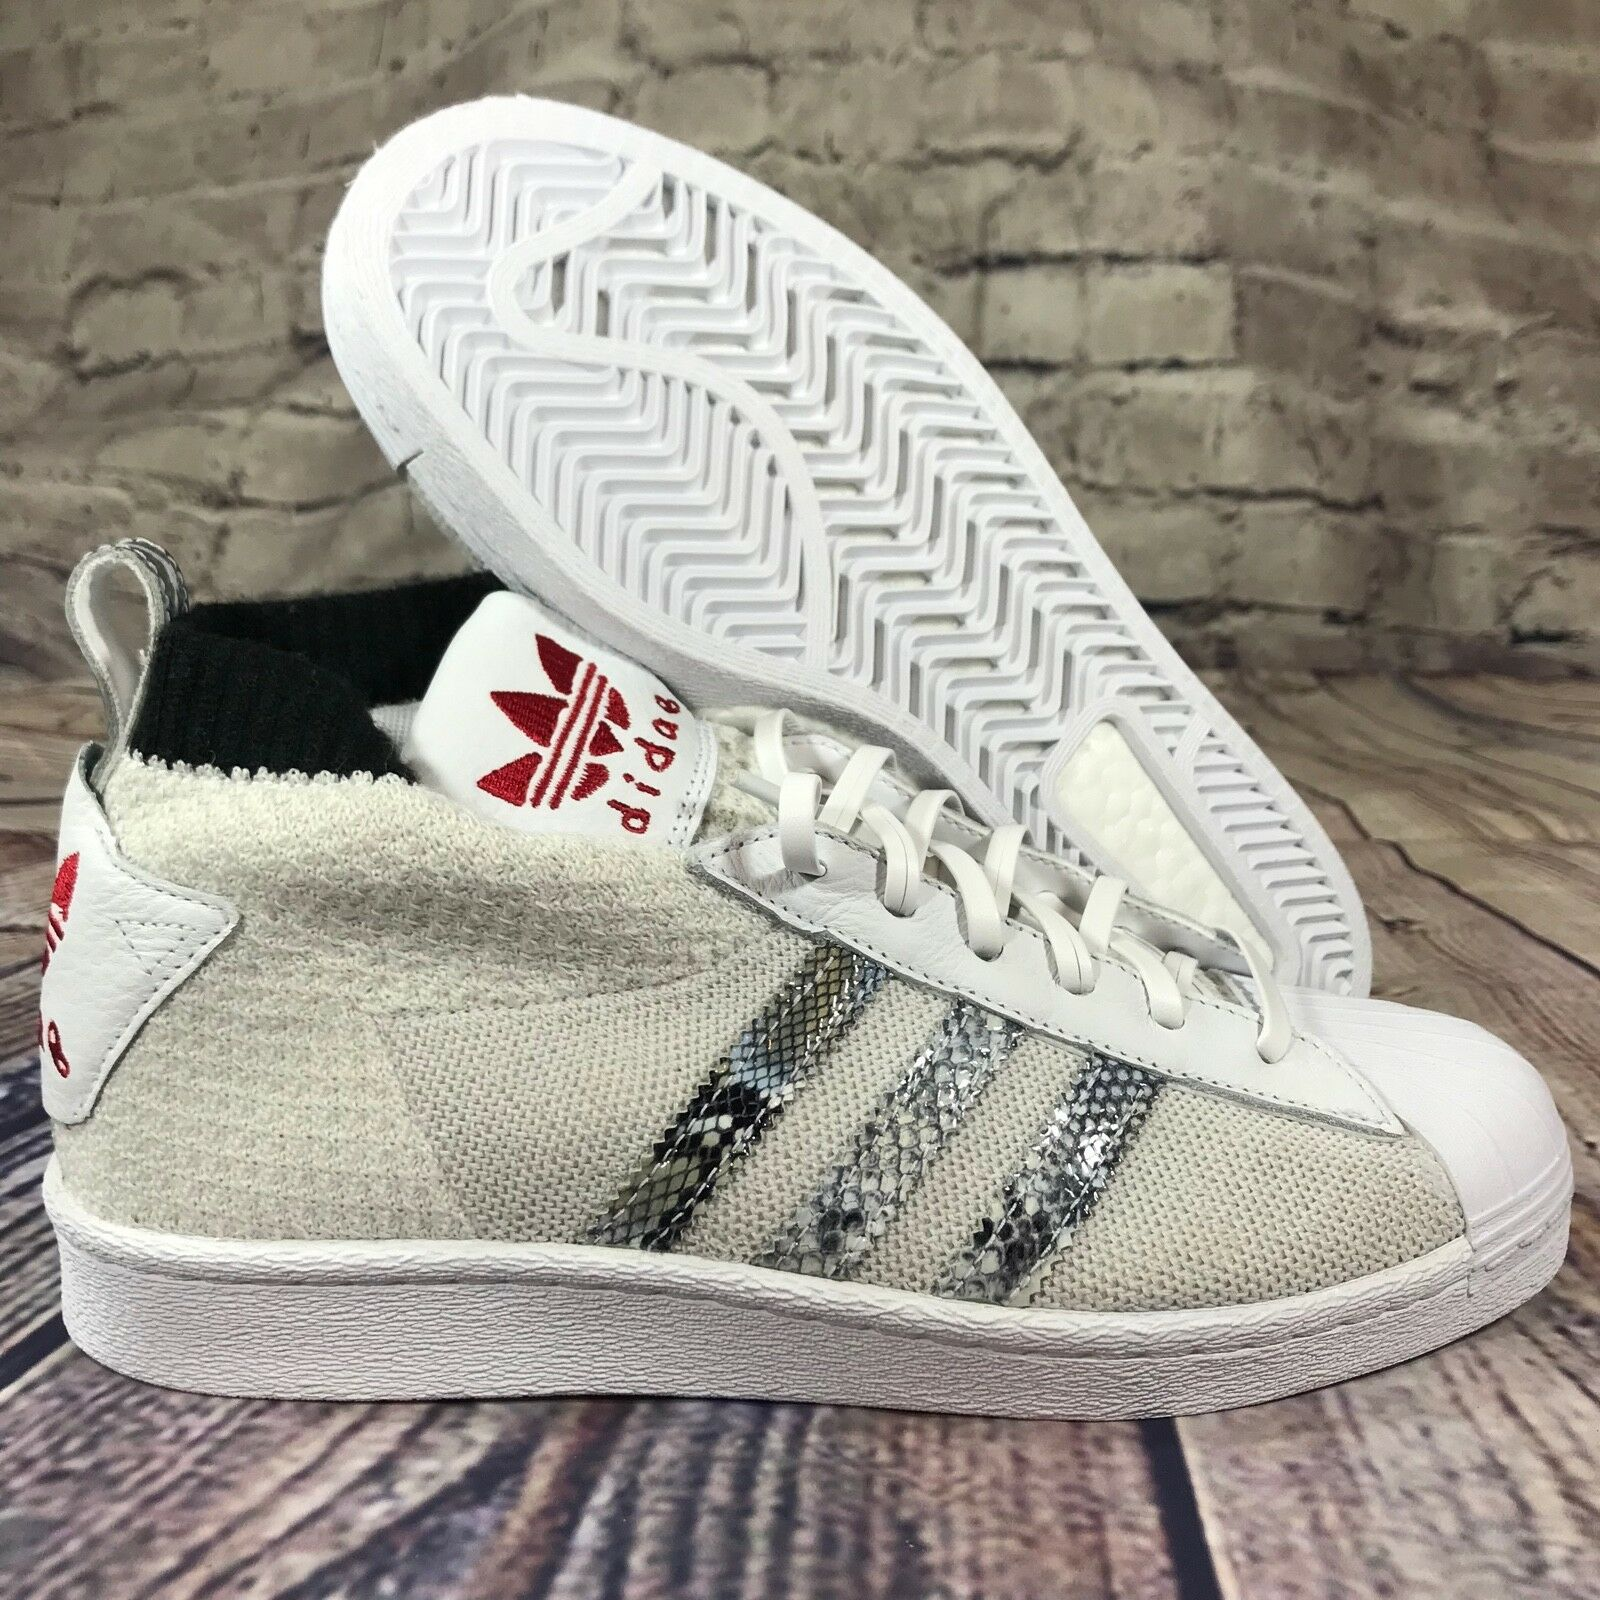 Adidas Originals UA & SONS ULTRA STAR STAR STAR United Arrows white snake skin B37111 d45ba1